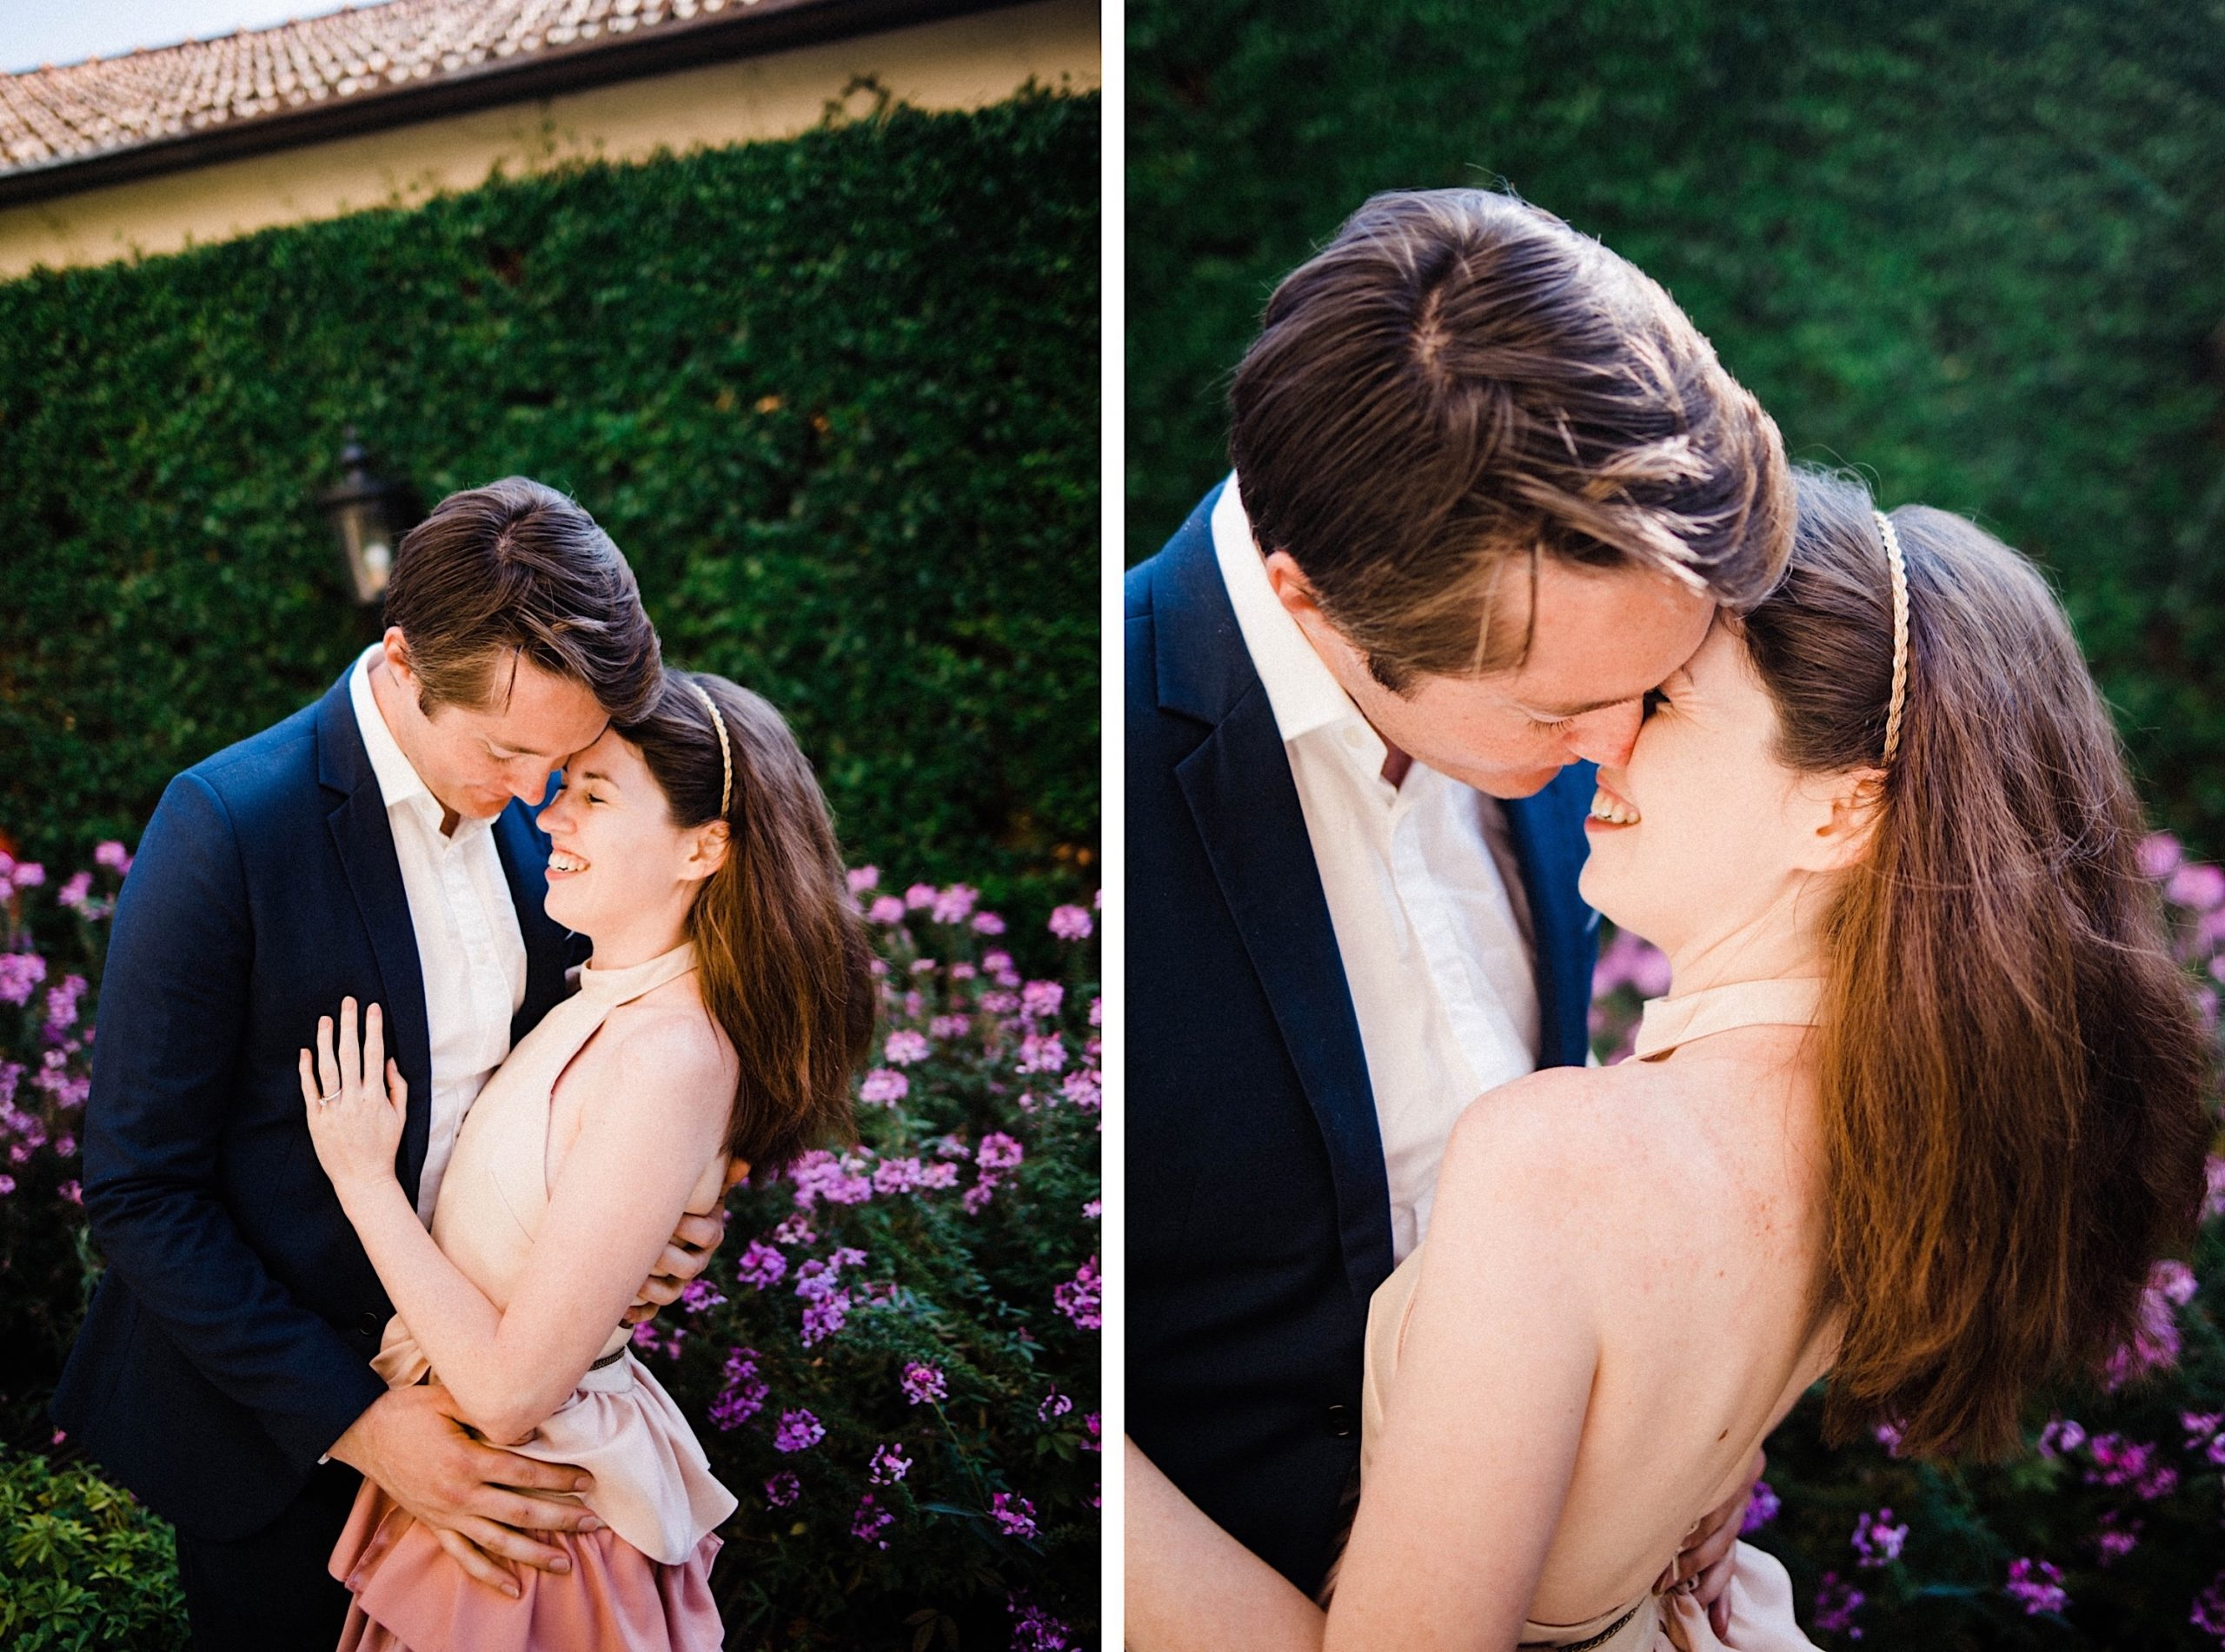 Two side-by-side, natural portrait photos of an engaged couple sharing a moment in front of a garden.